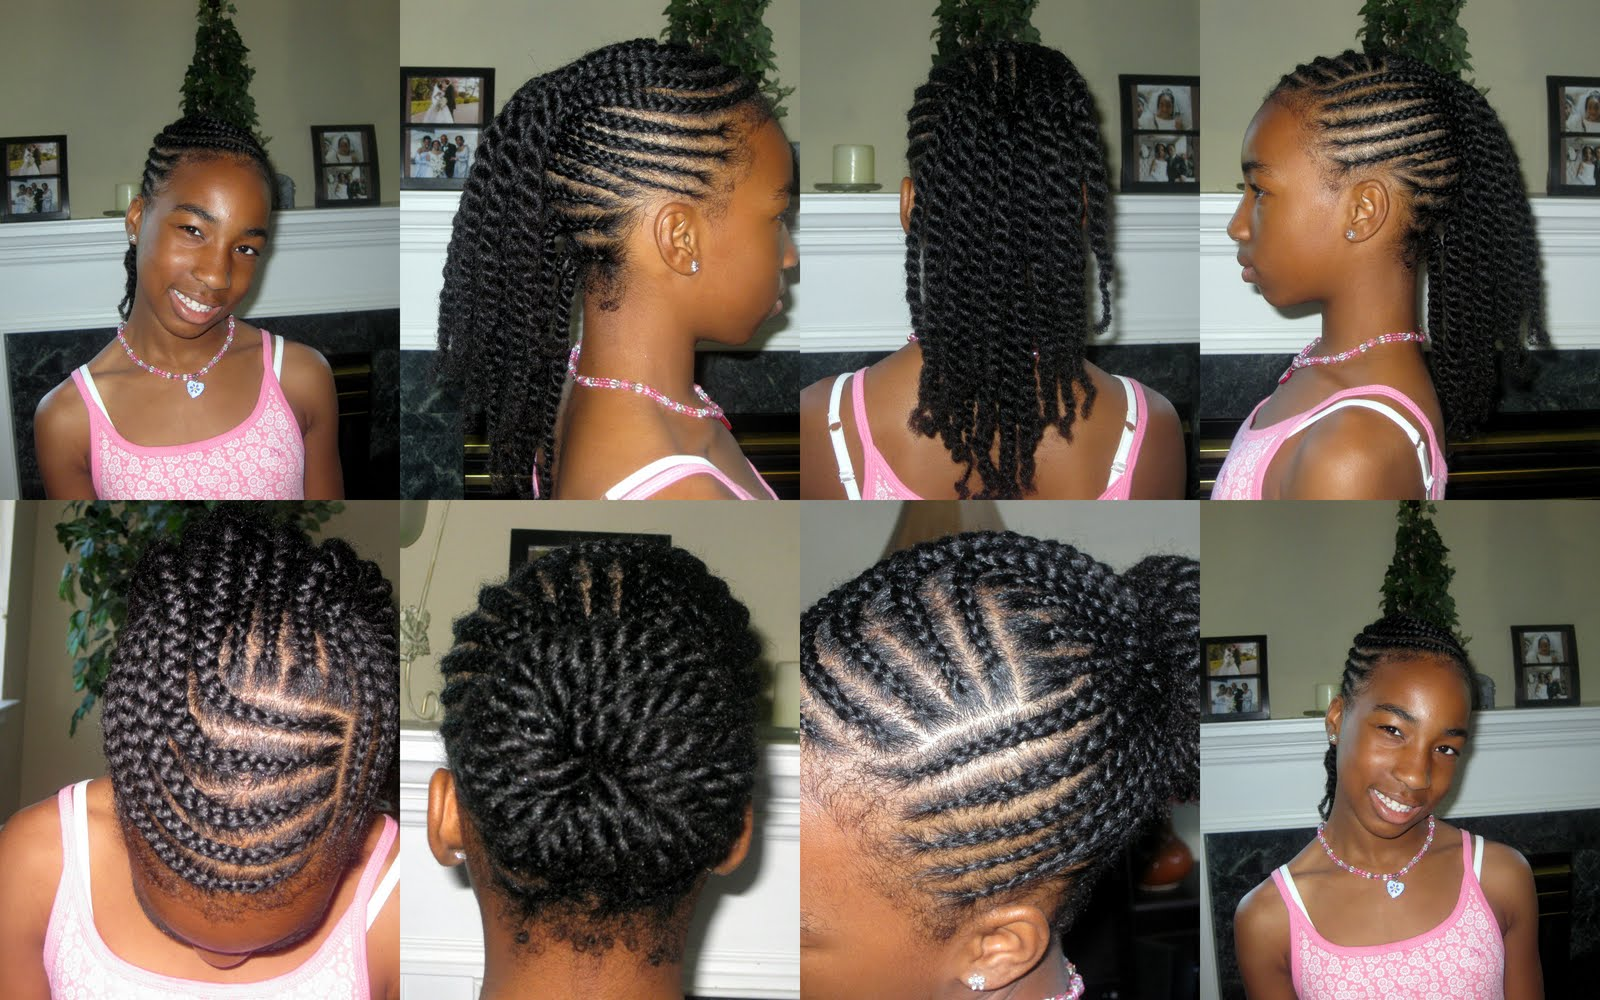 Braided Hair Styles For Little Girls: Easy Braided Hairstyles For Little Black Girls